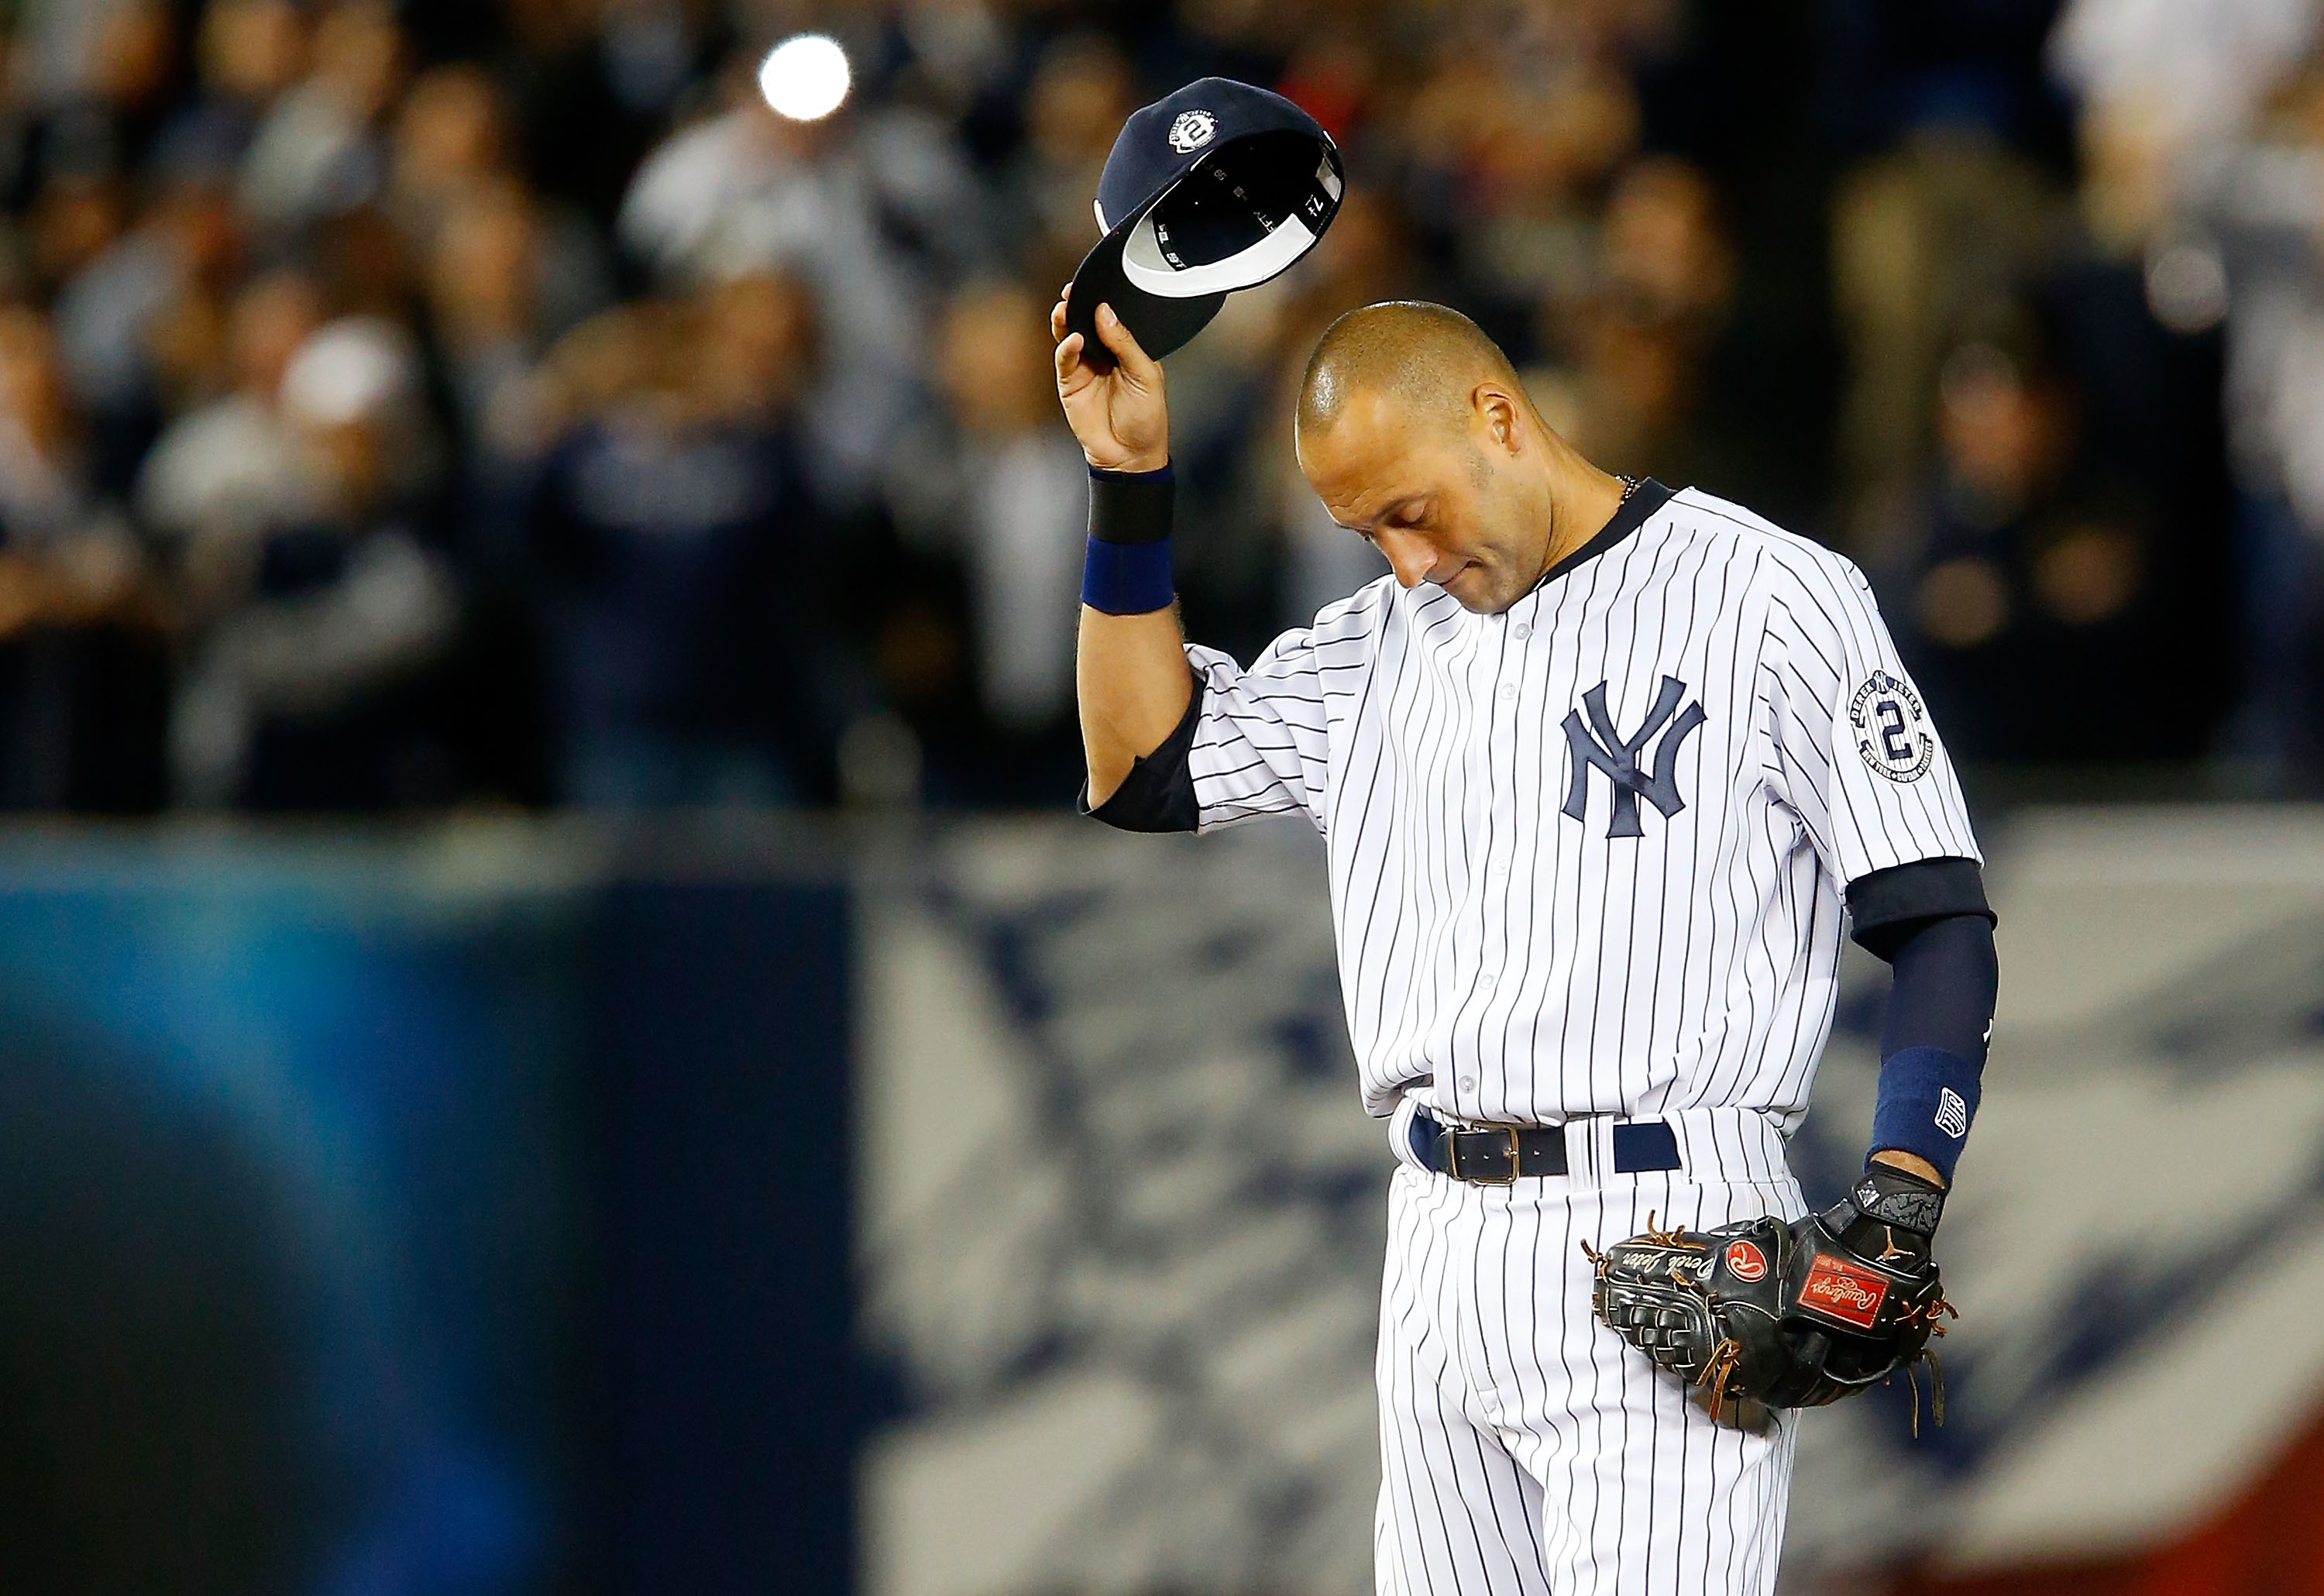 Derek Jeter #2 of the New York Yankees gestures to the crowd during a game against the Baltimore Orioles at Yankee Stadium on September 25, 2014 in the Bronx borough of New York City. The game was Jeter's last at Yankee Stadium and the Yankees defeated the Orioles 6-5.